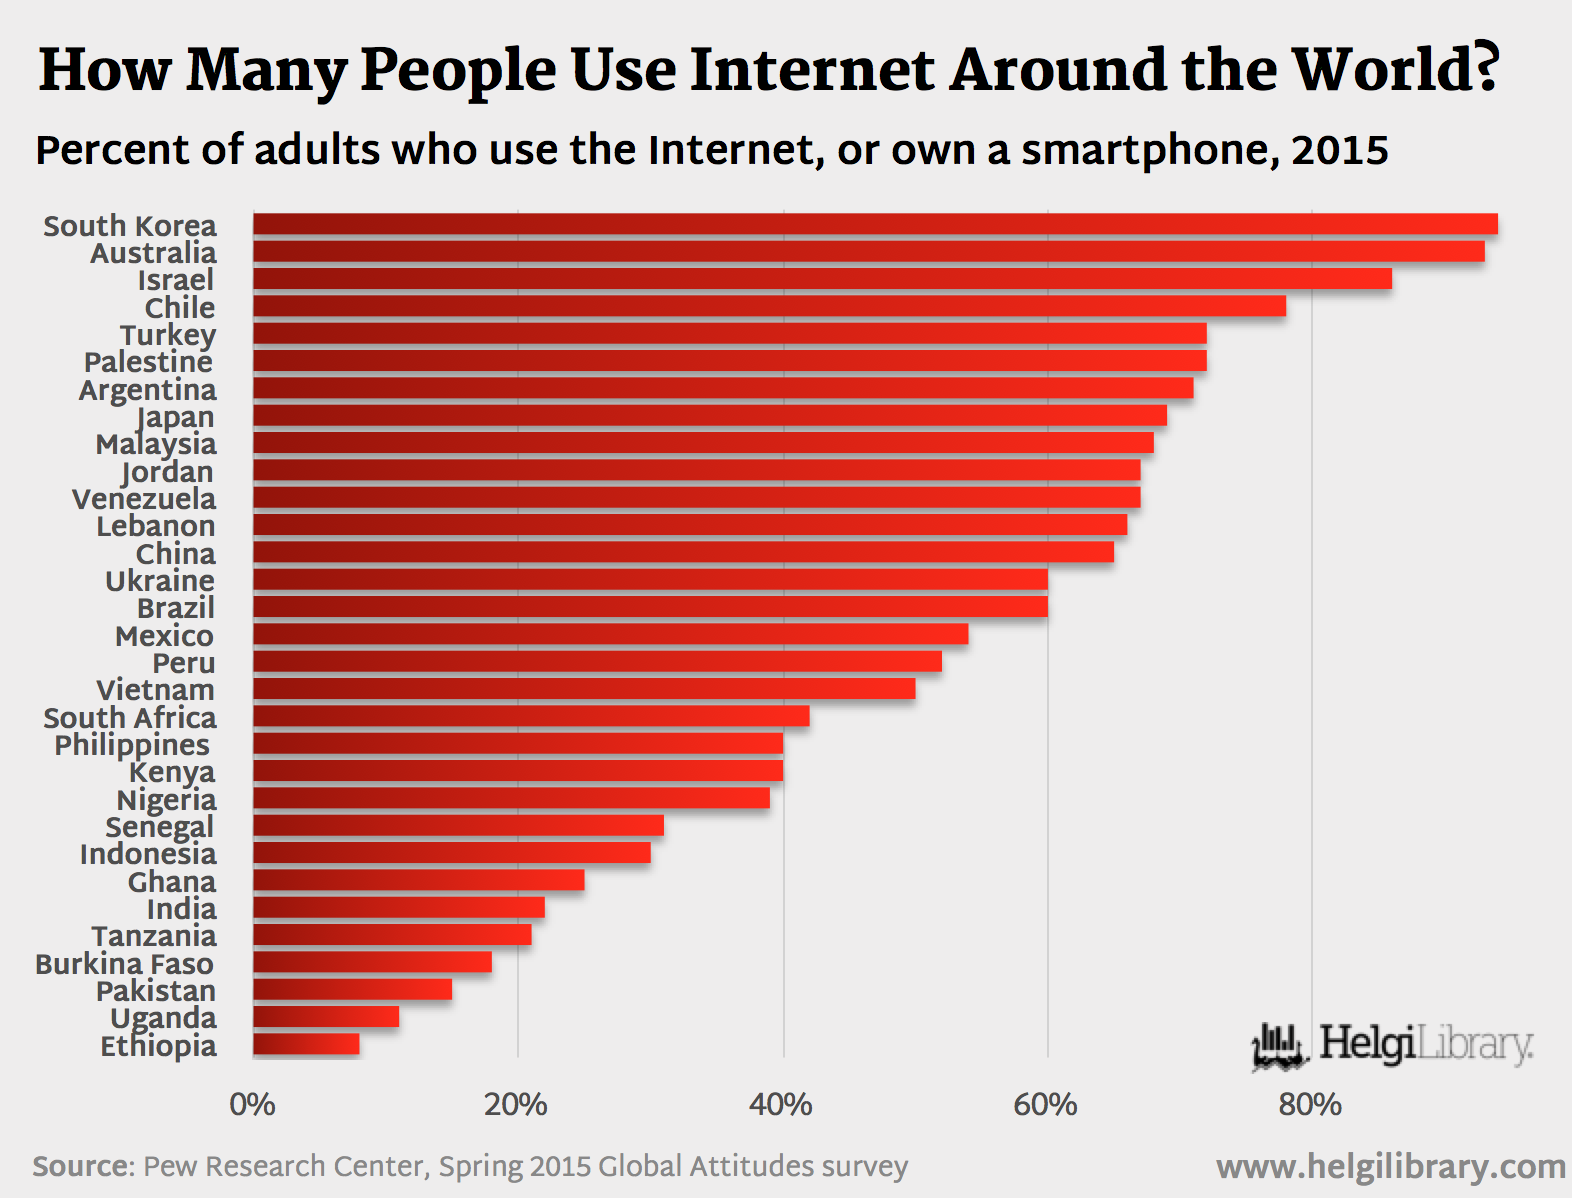 How many people in the world